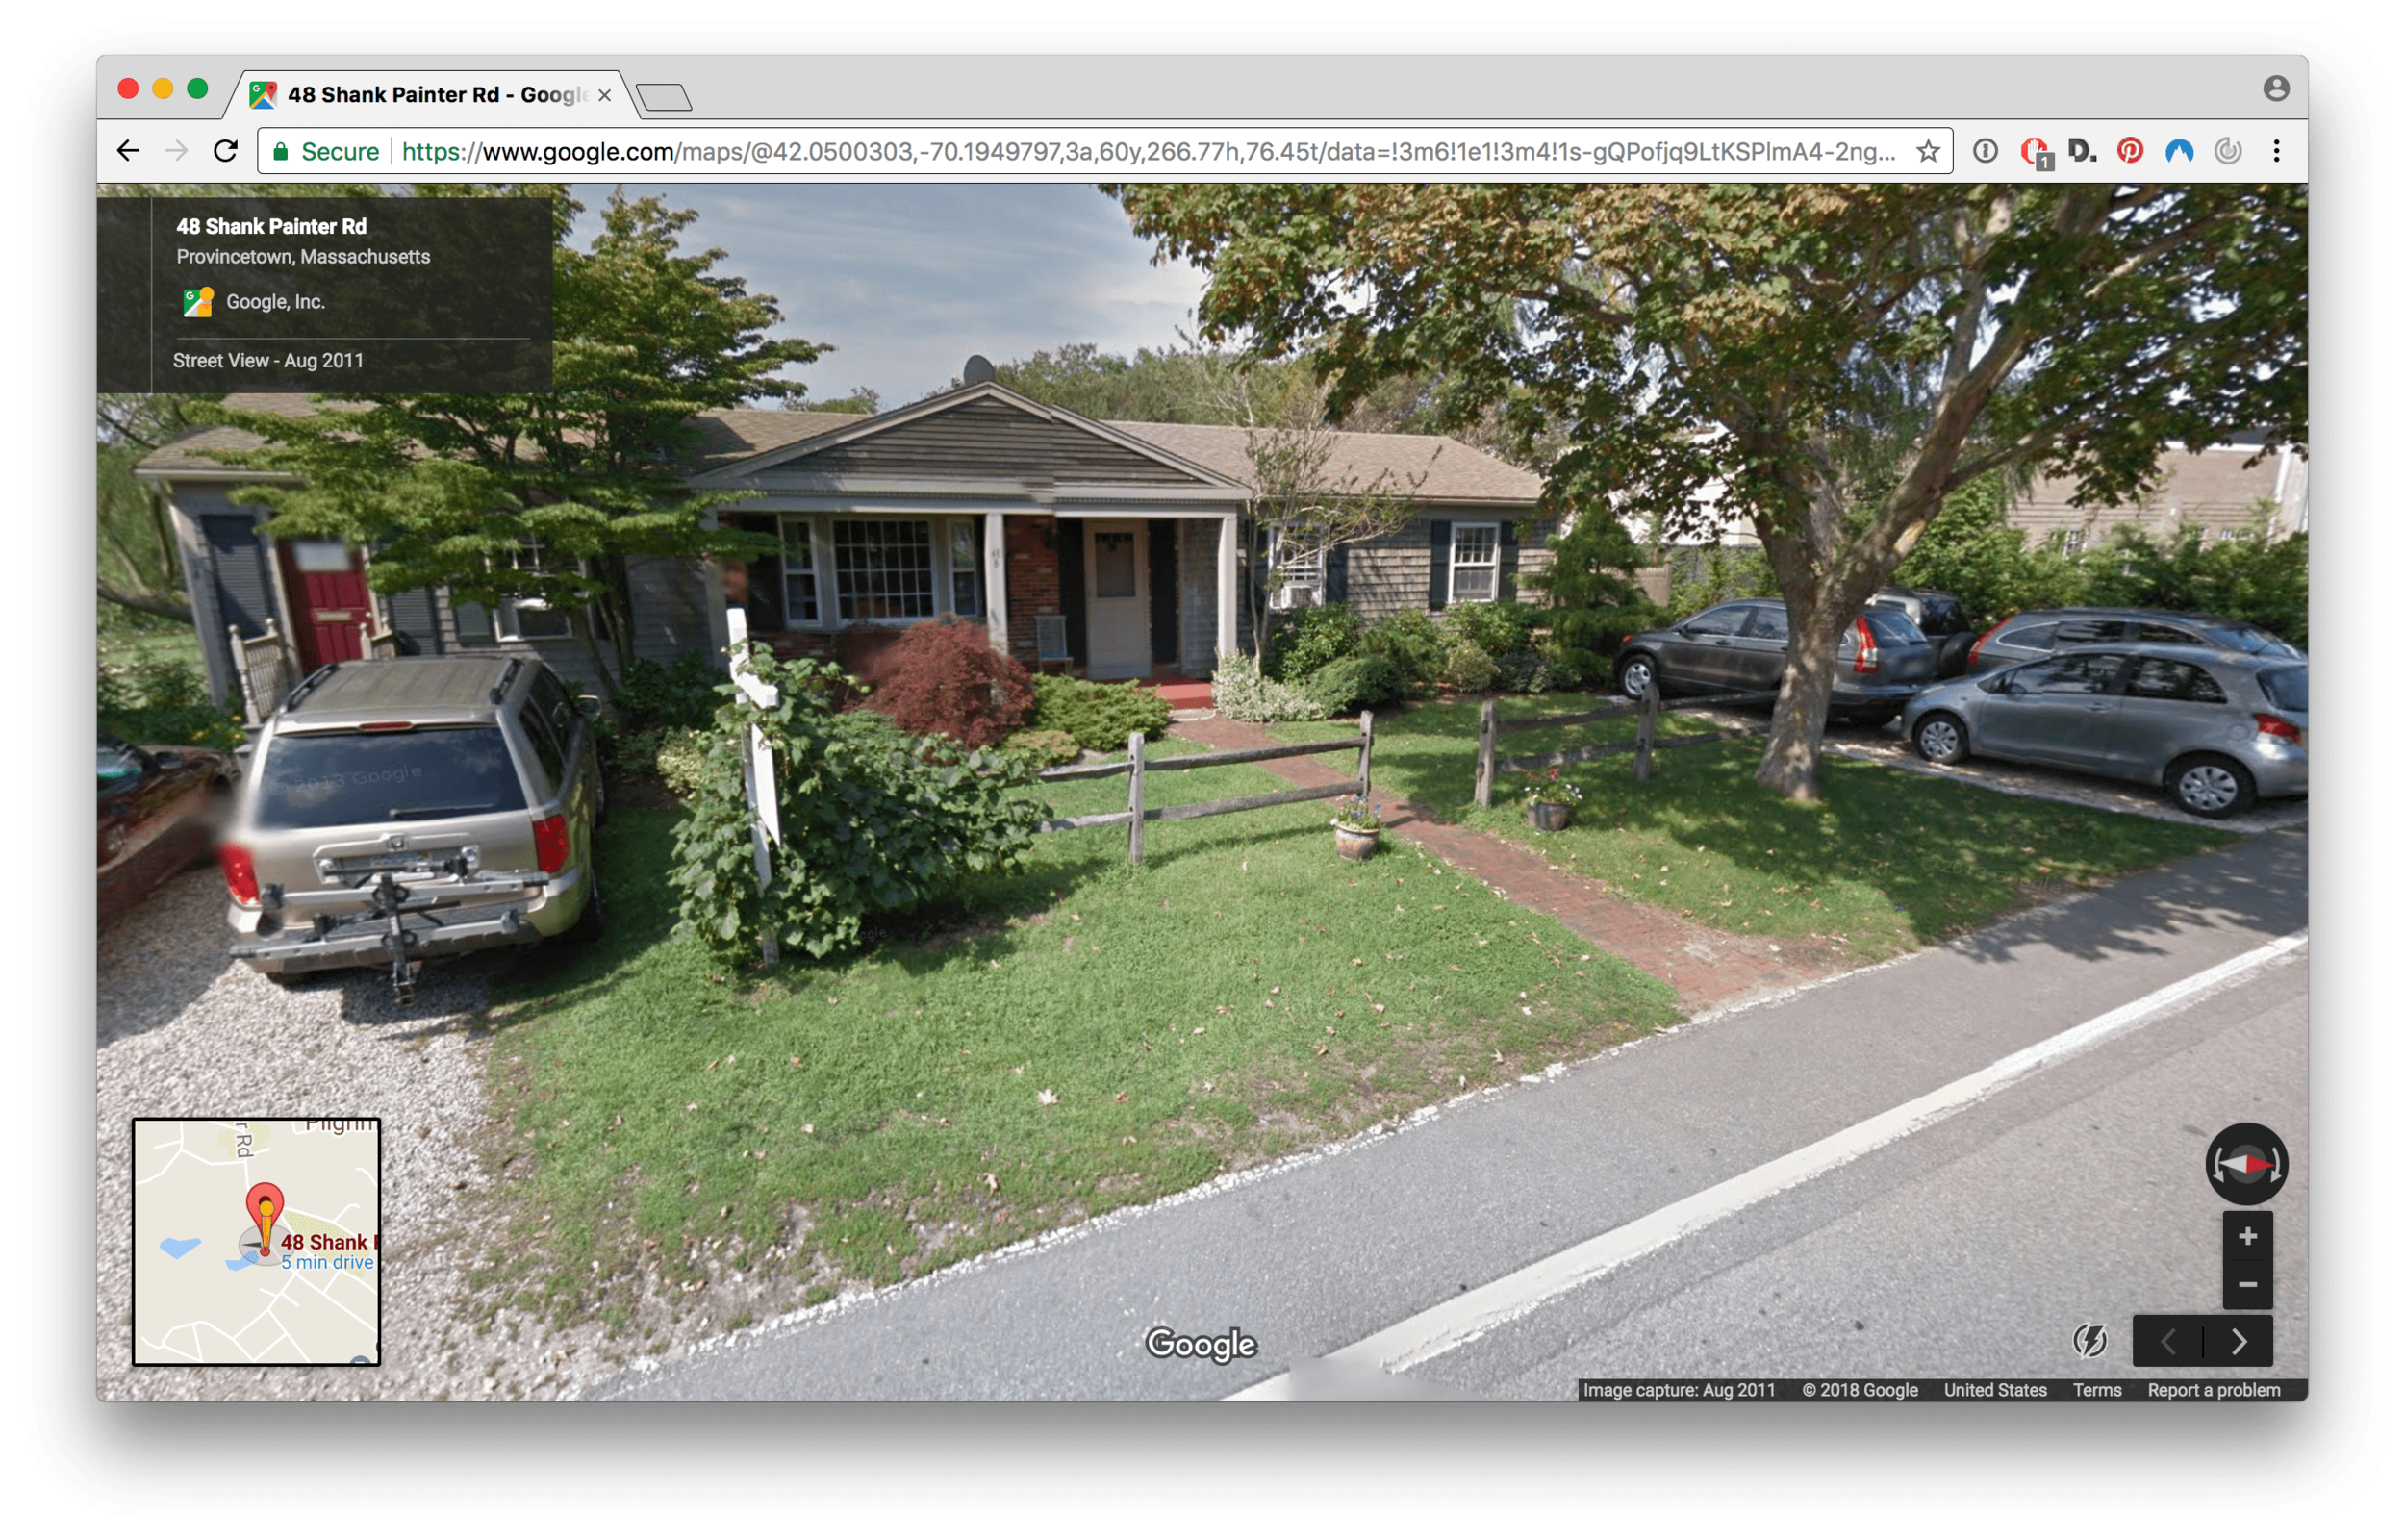 48 Shank Painter Road, Provincetown. Google Streetview image (2011)